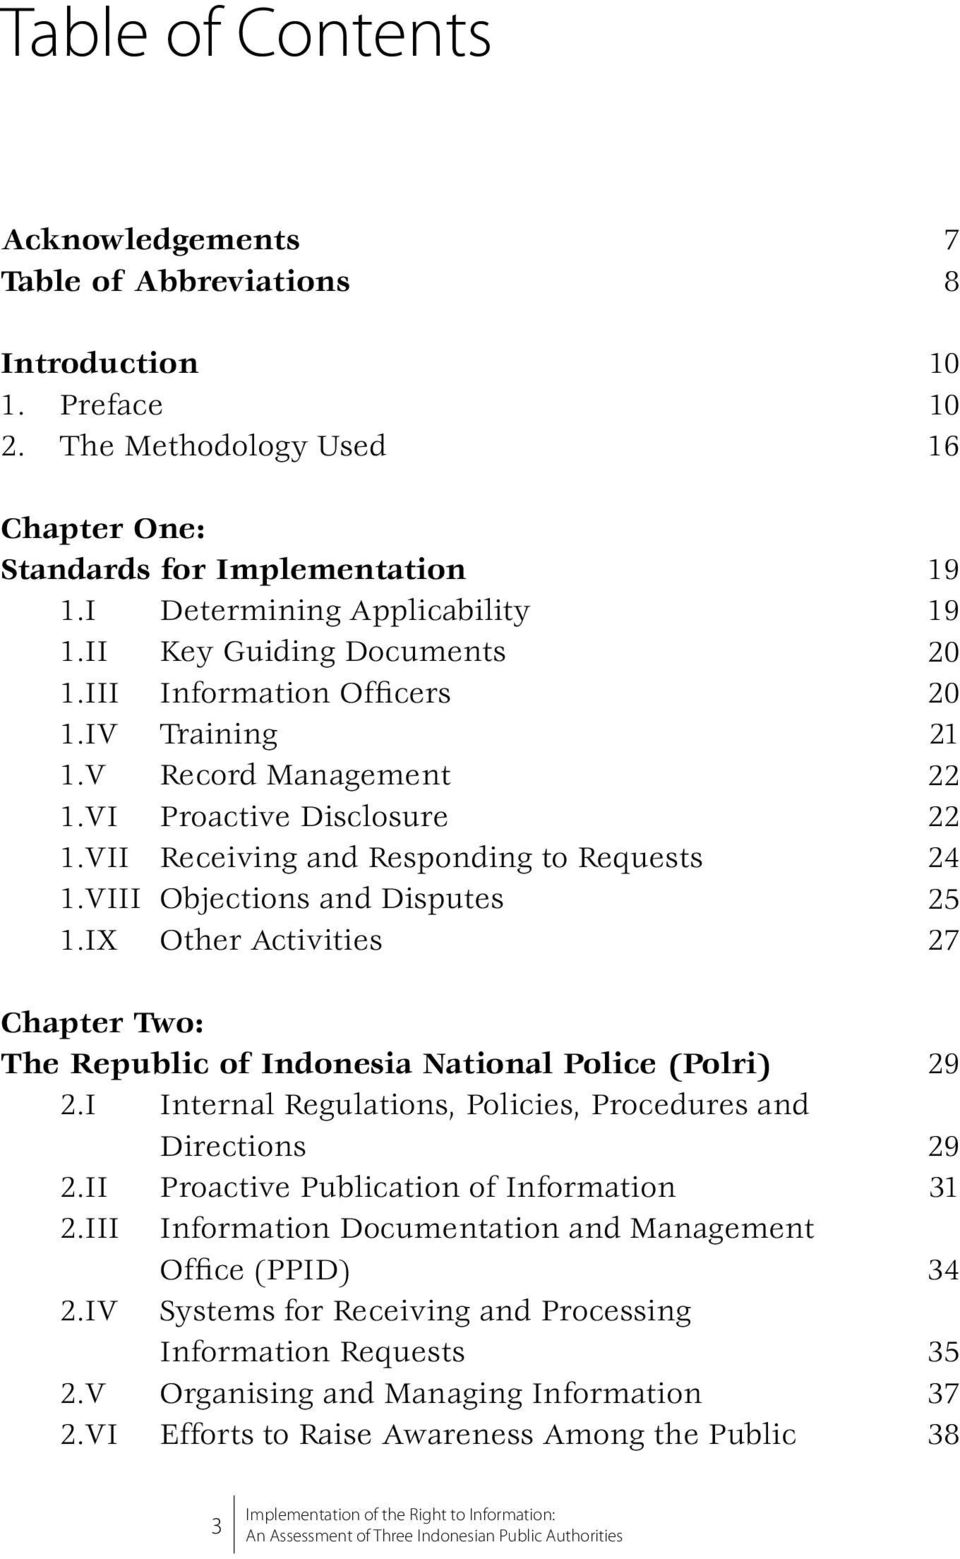 IX Other Activities Chapter Two: The Republic of Indonesia National Police (Polri) 2.I Internal Regulations, Policies, Procedures and Directions 2.II Proactive Publication of Information 2.